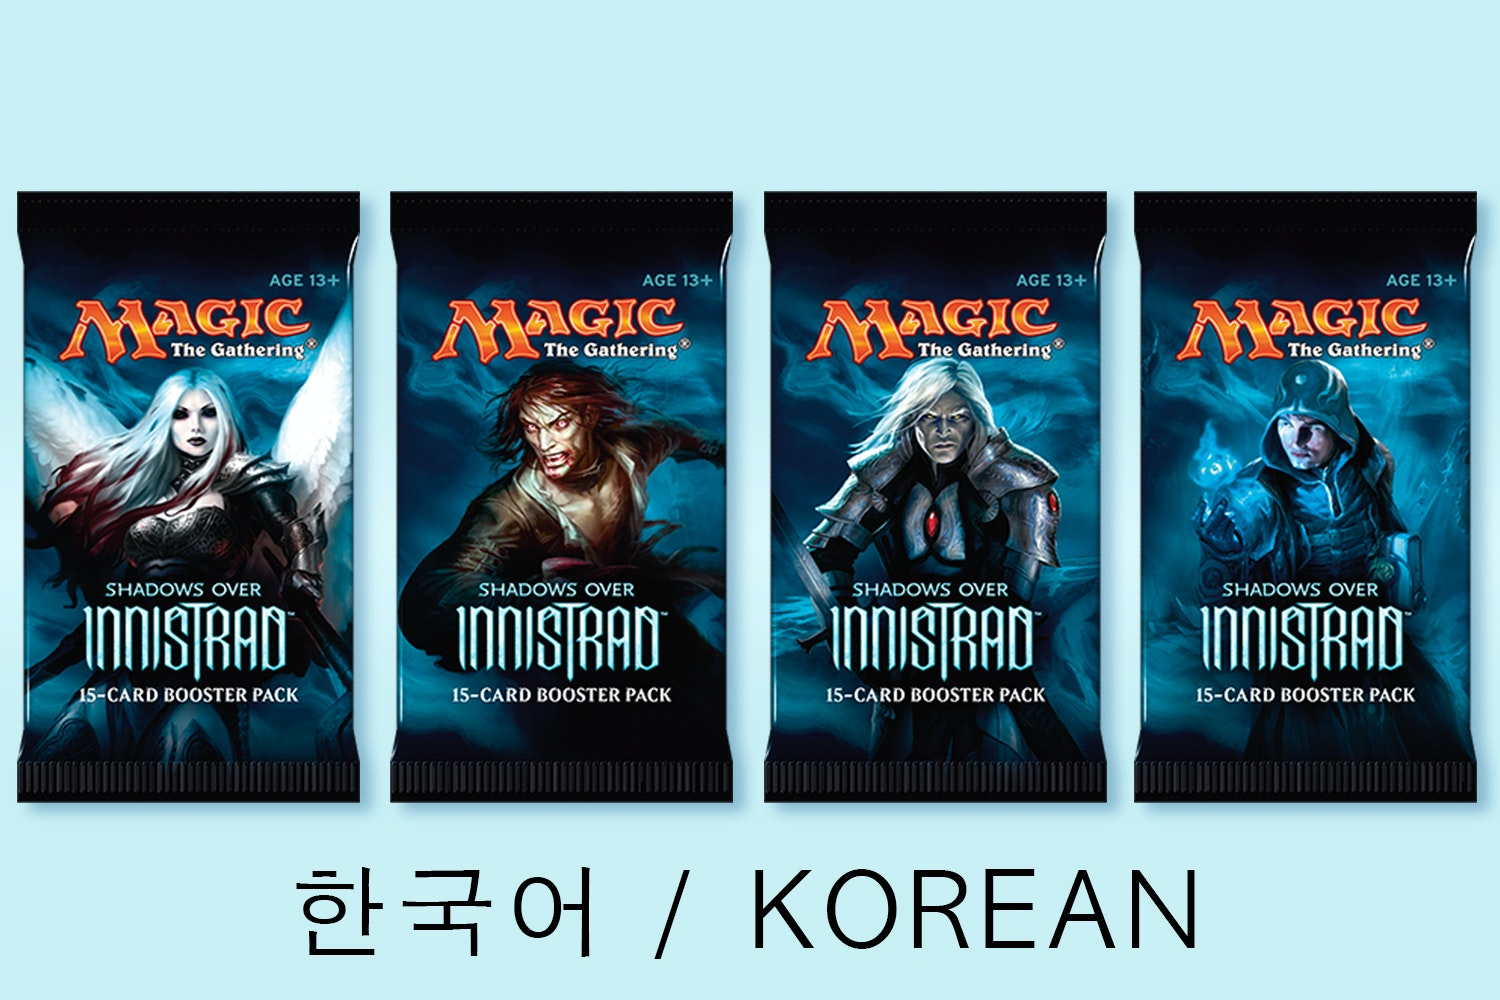 Shadows Over Innistrad in Korean